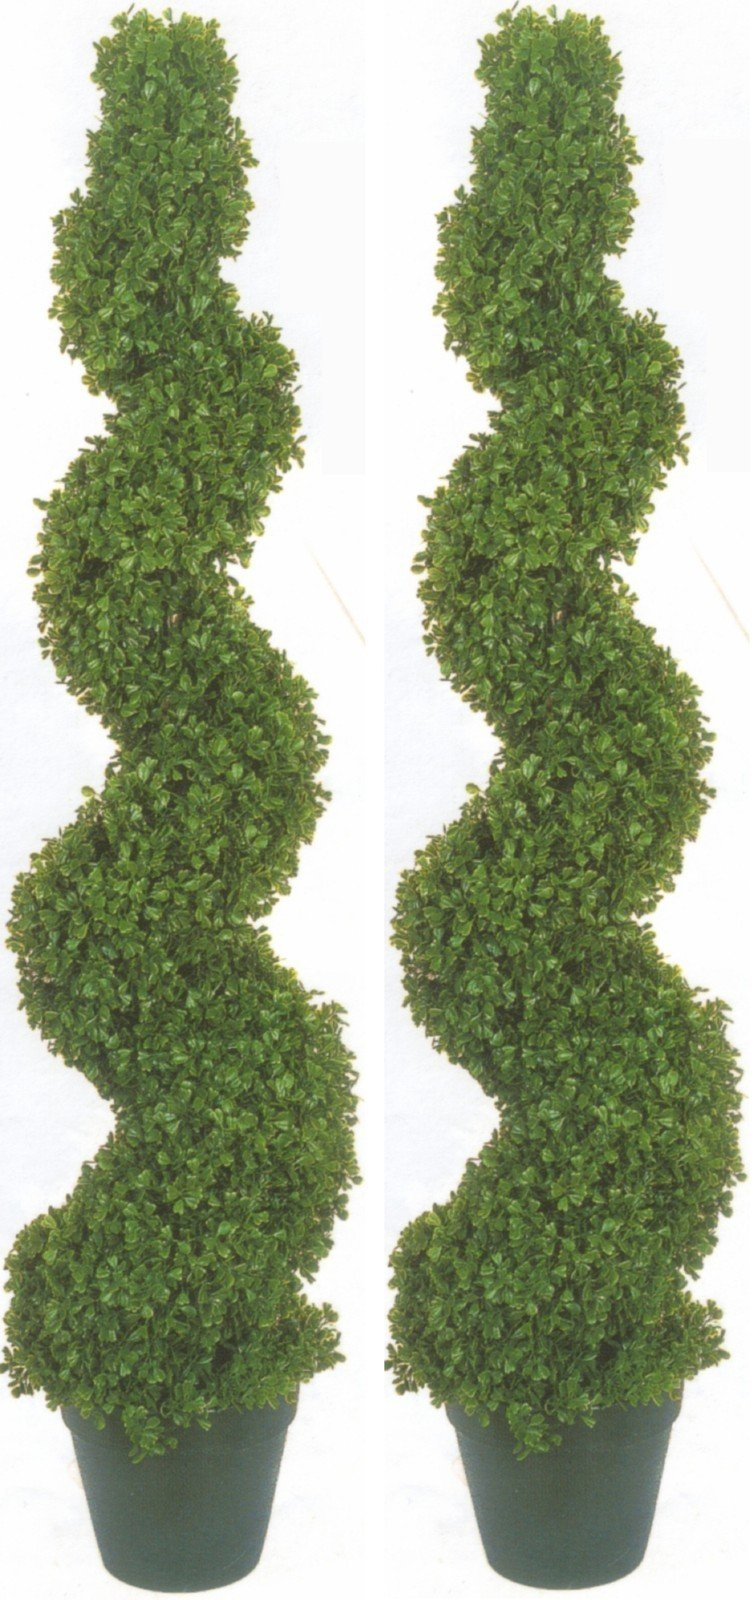 Two 4 Foot 2 Inch Artificial Boxwood Spiral Topiary Trees Potted Indoor or Outdoor by Silk Tree Warehouse (Image #1)